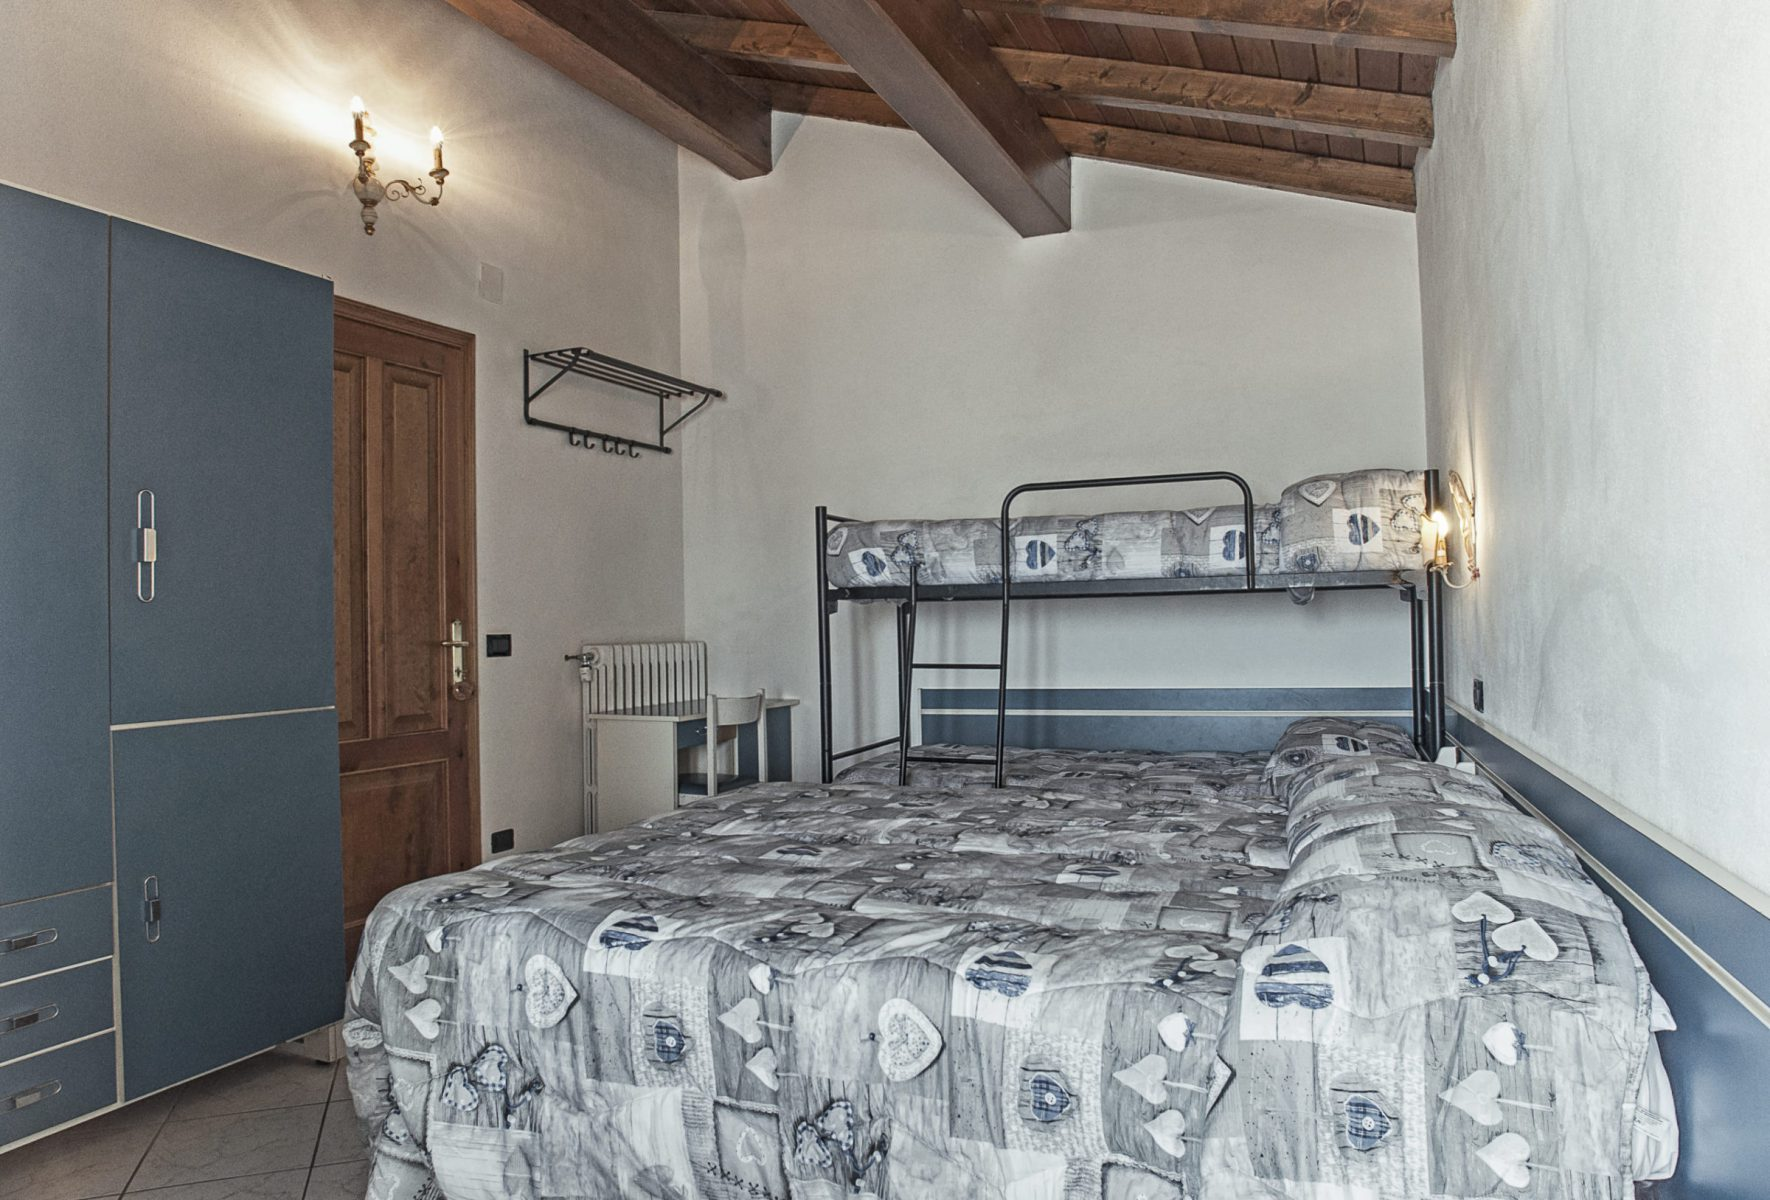 albergoguerri-17-scaled-e1585750991491